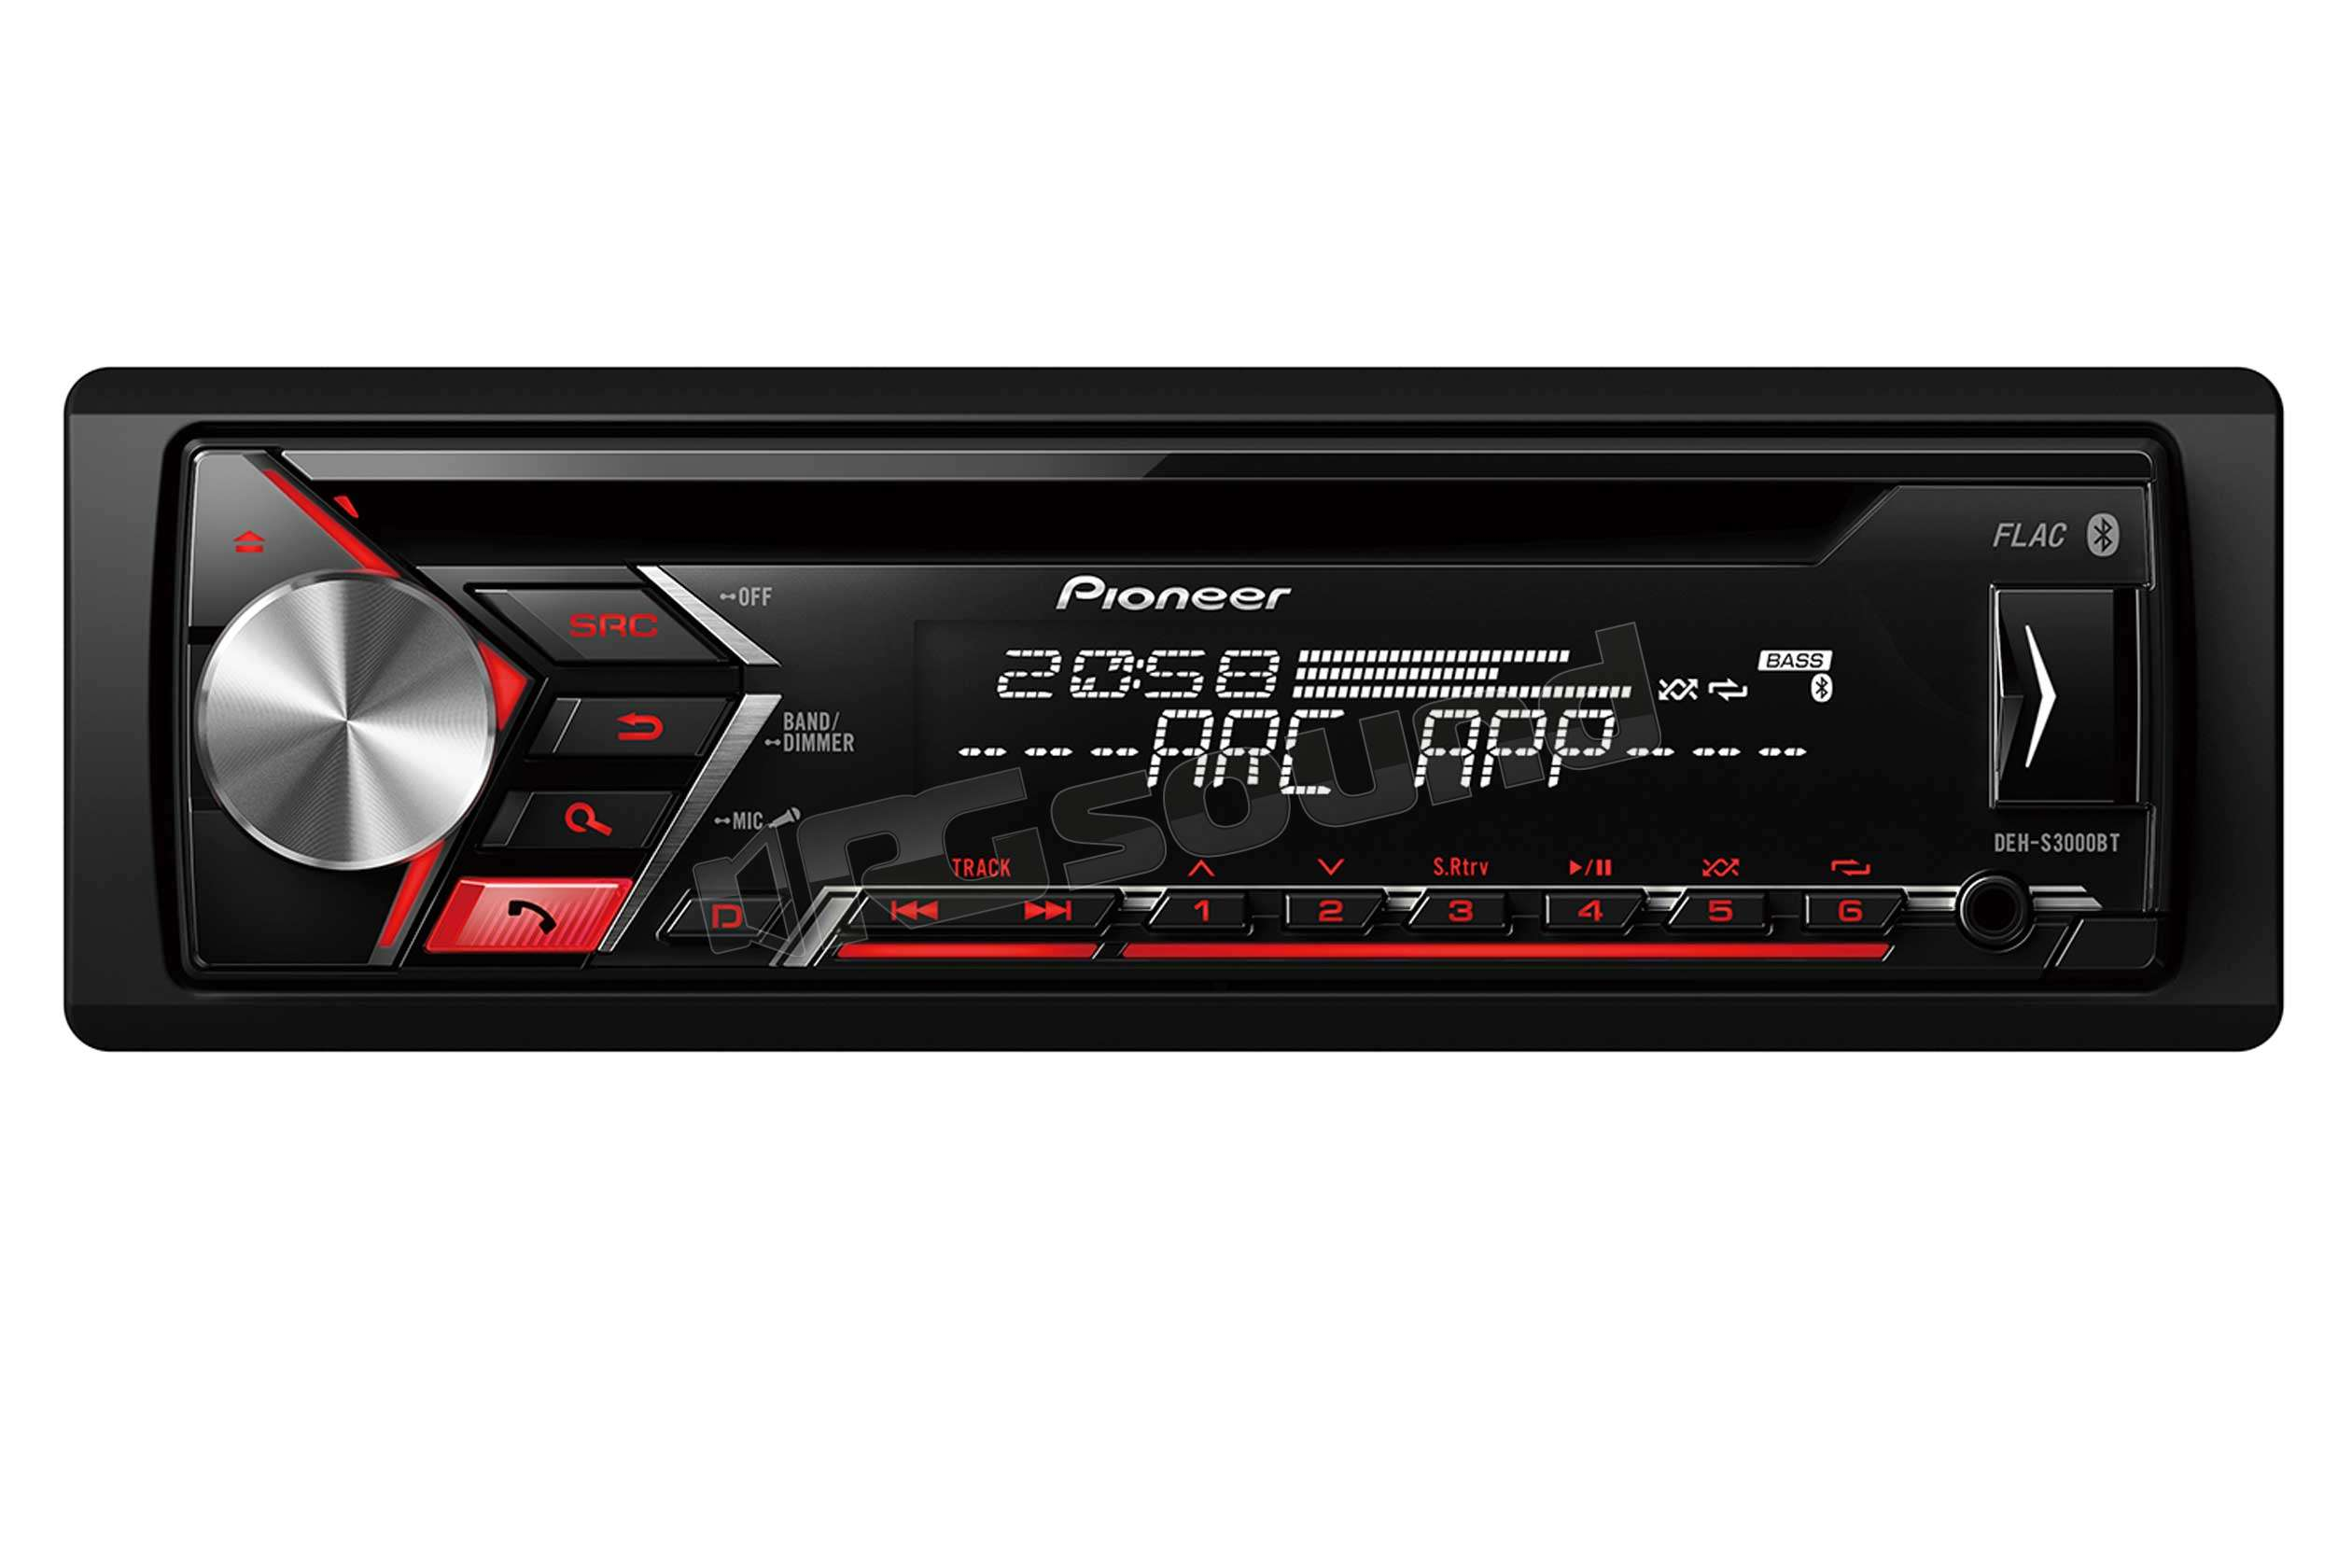 pioneer deh s3000bt autoradio 1 din e 2 din autoradio 1 din rg sound store. Black Bedroom Furniture Sets. Home Design Ideas